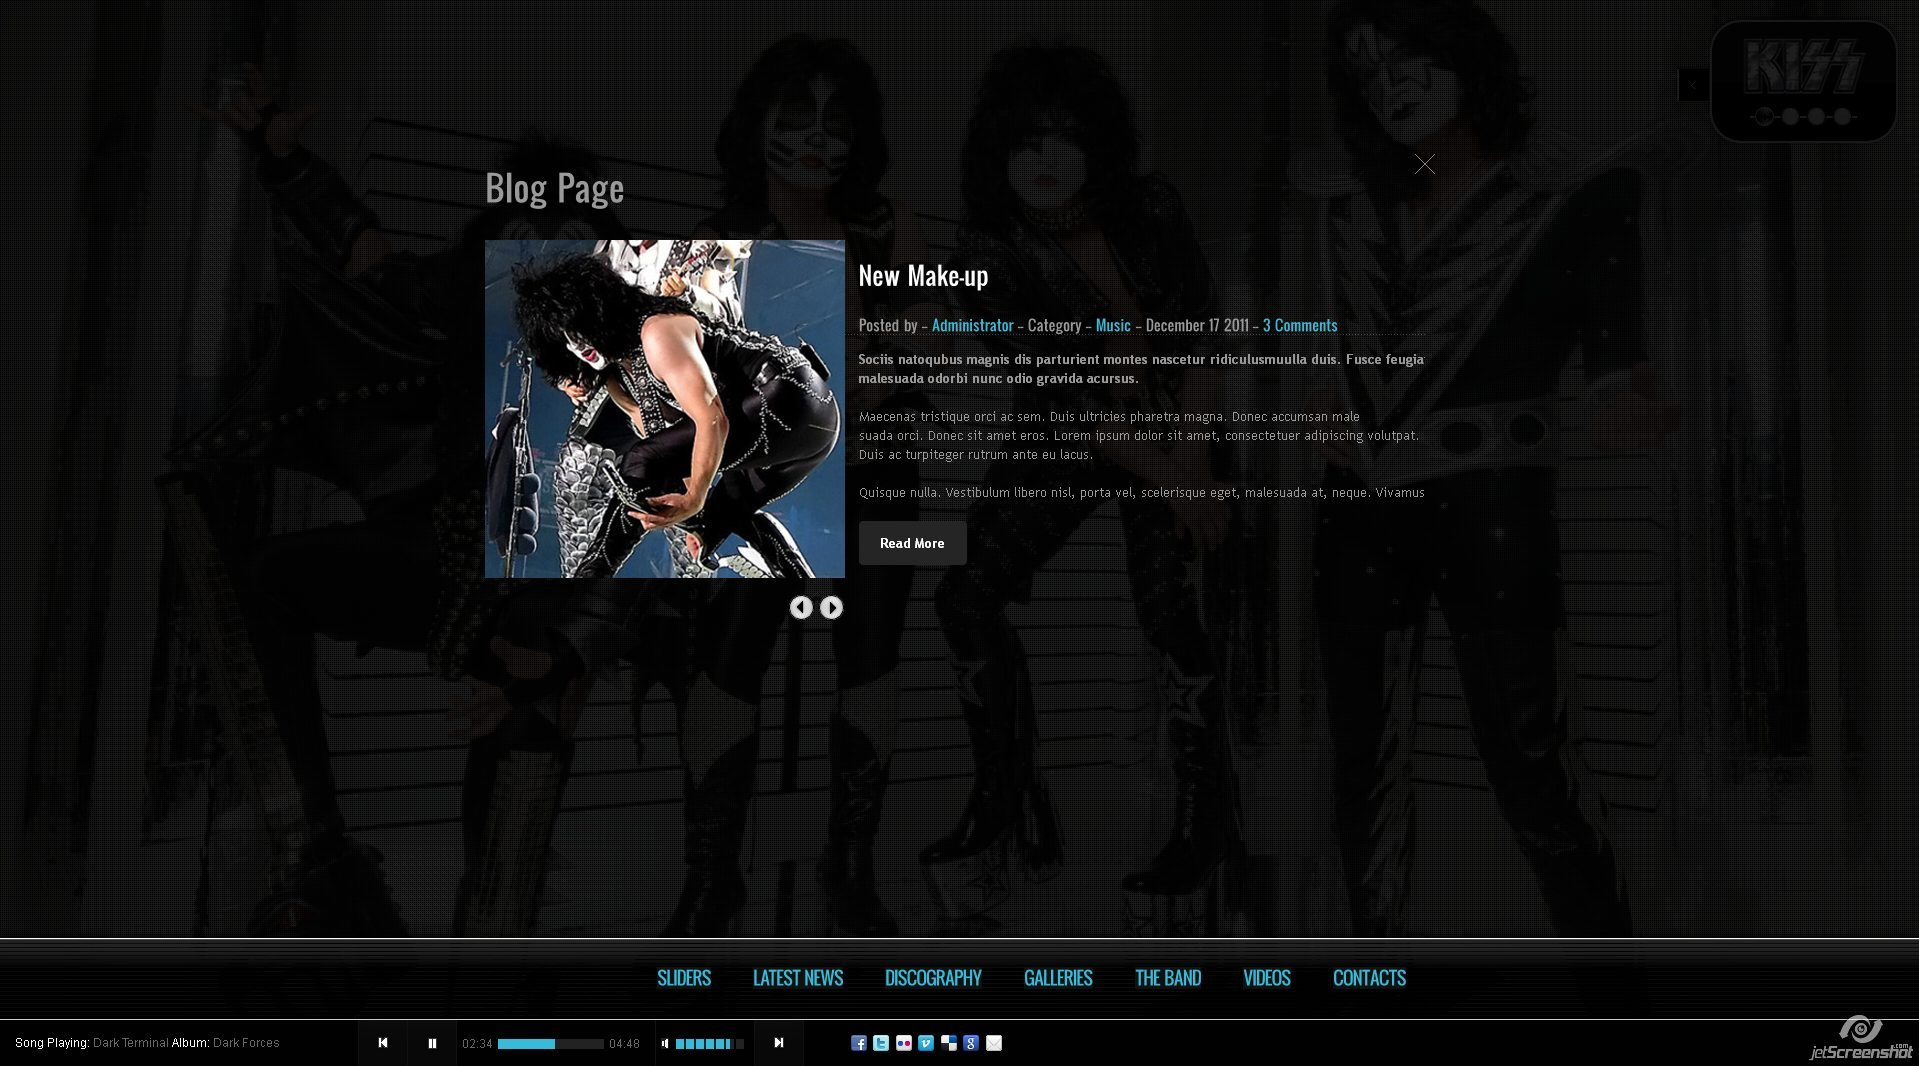 Kiss - Band-Template - HTML5 - CSS3 - Blog Page